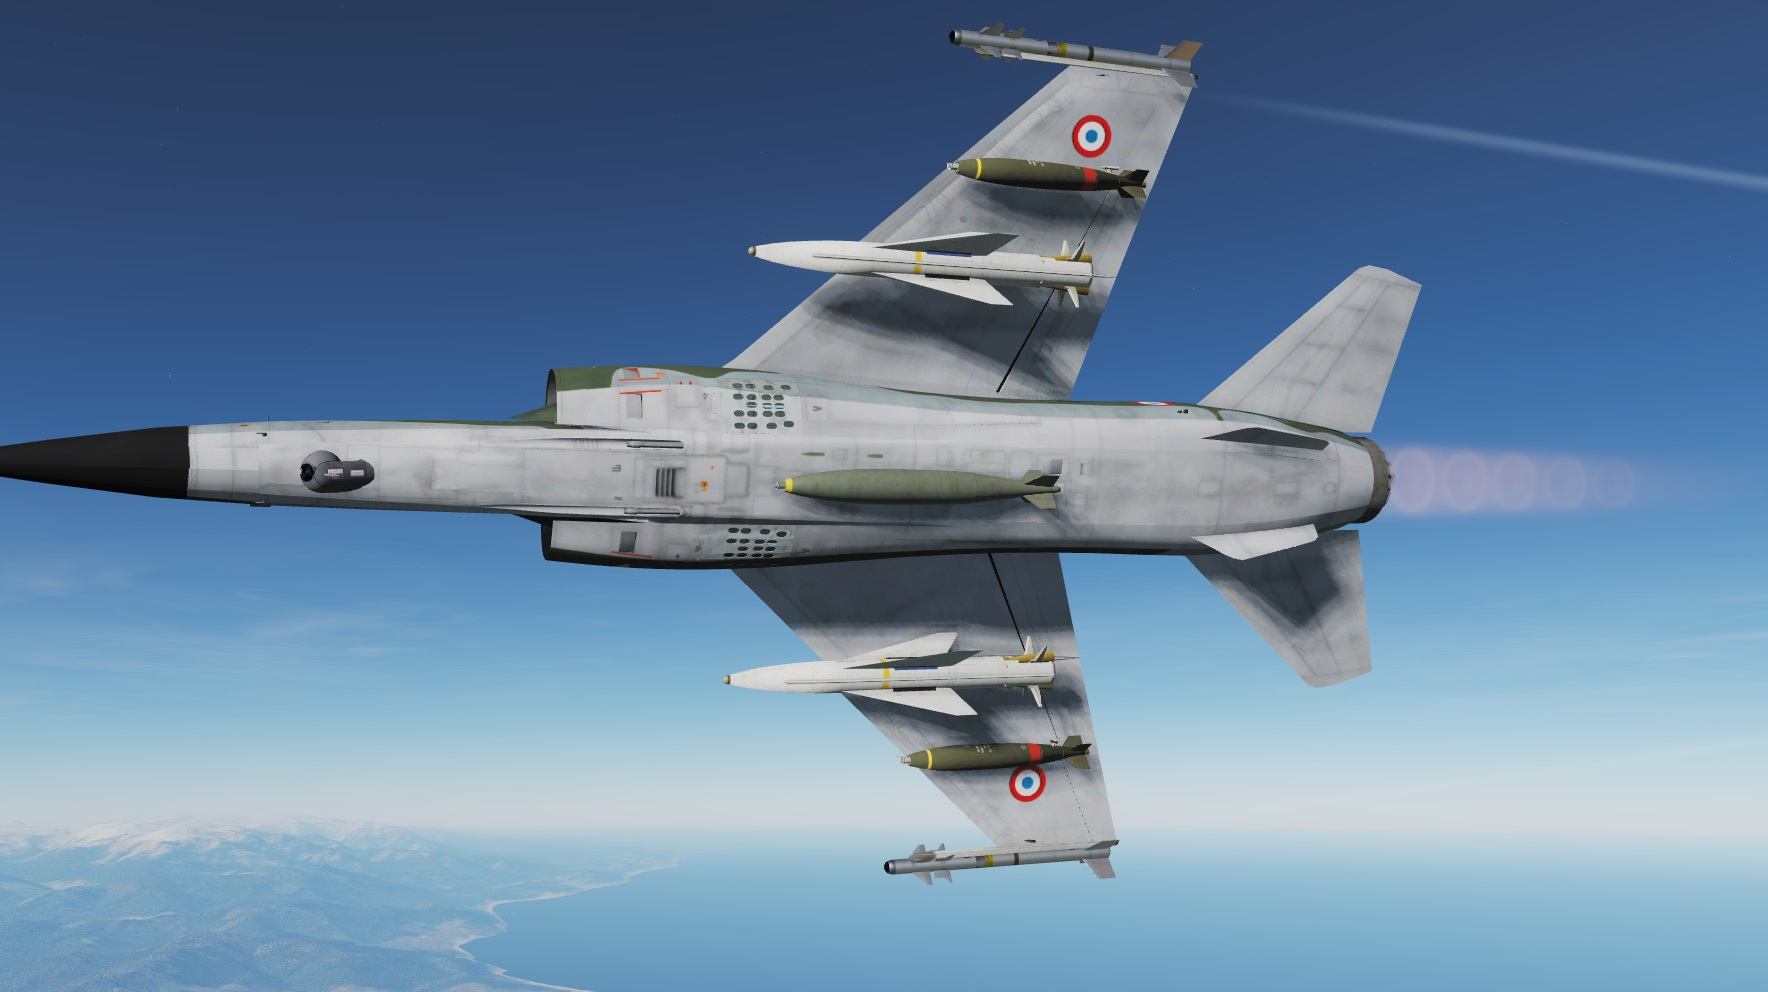 MIRAGE F1 and F1CT for 2.5.5 by Eric and Patrick